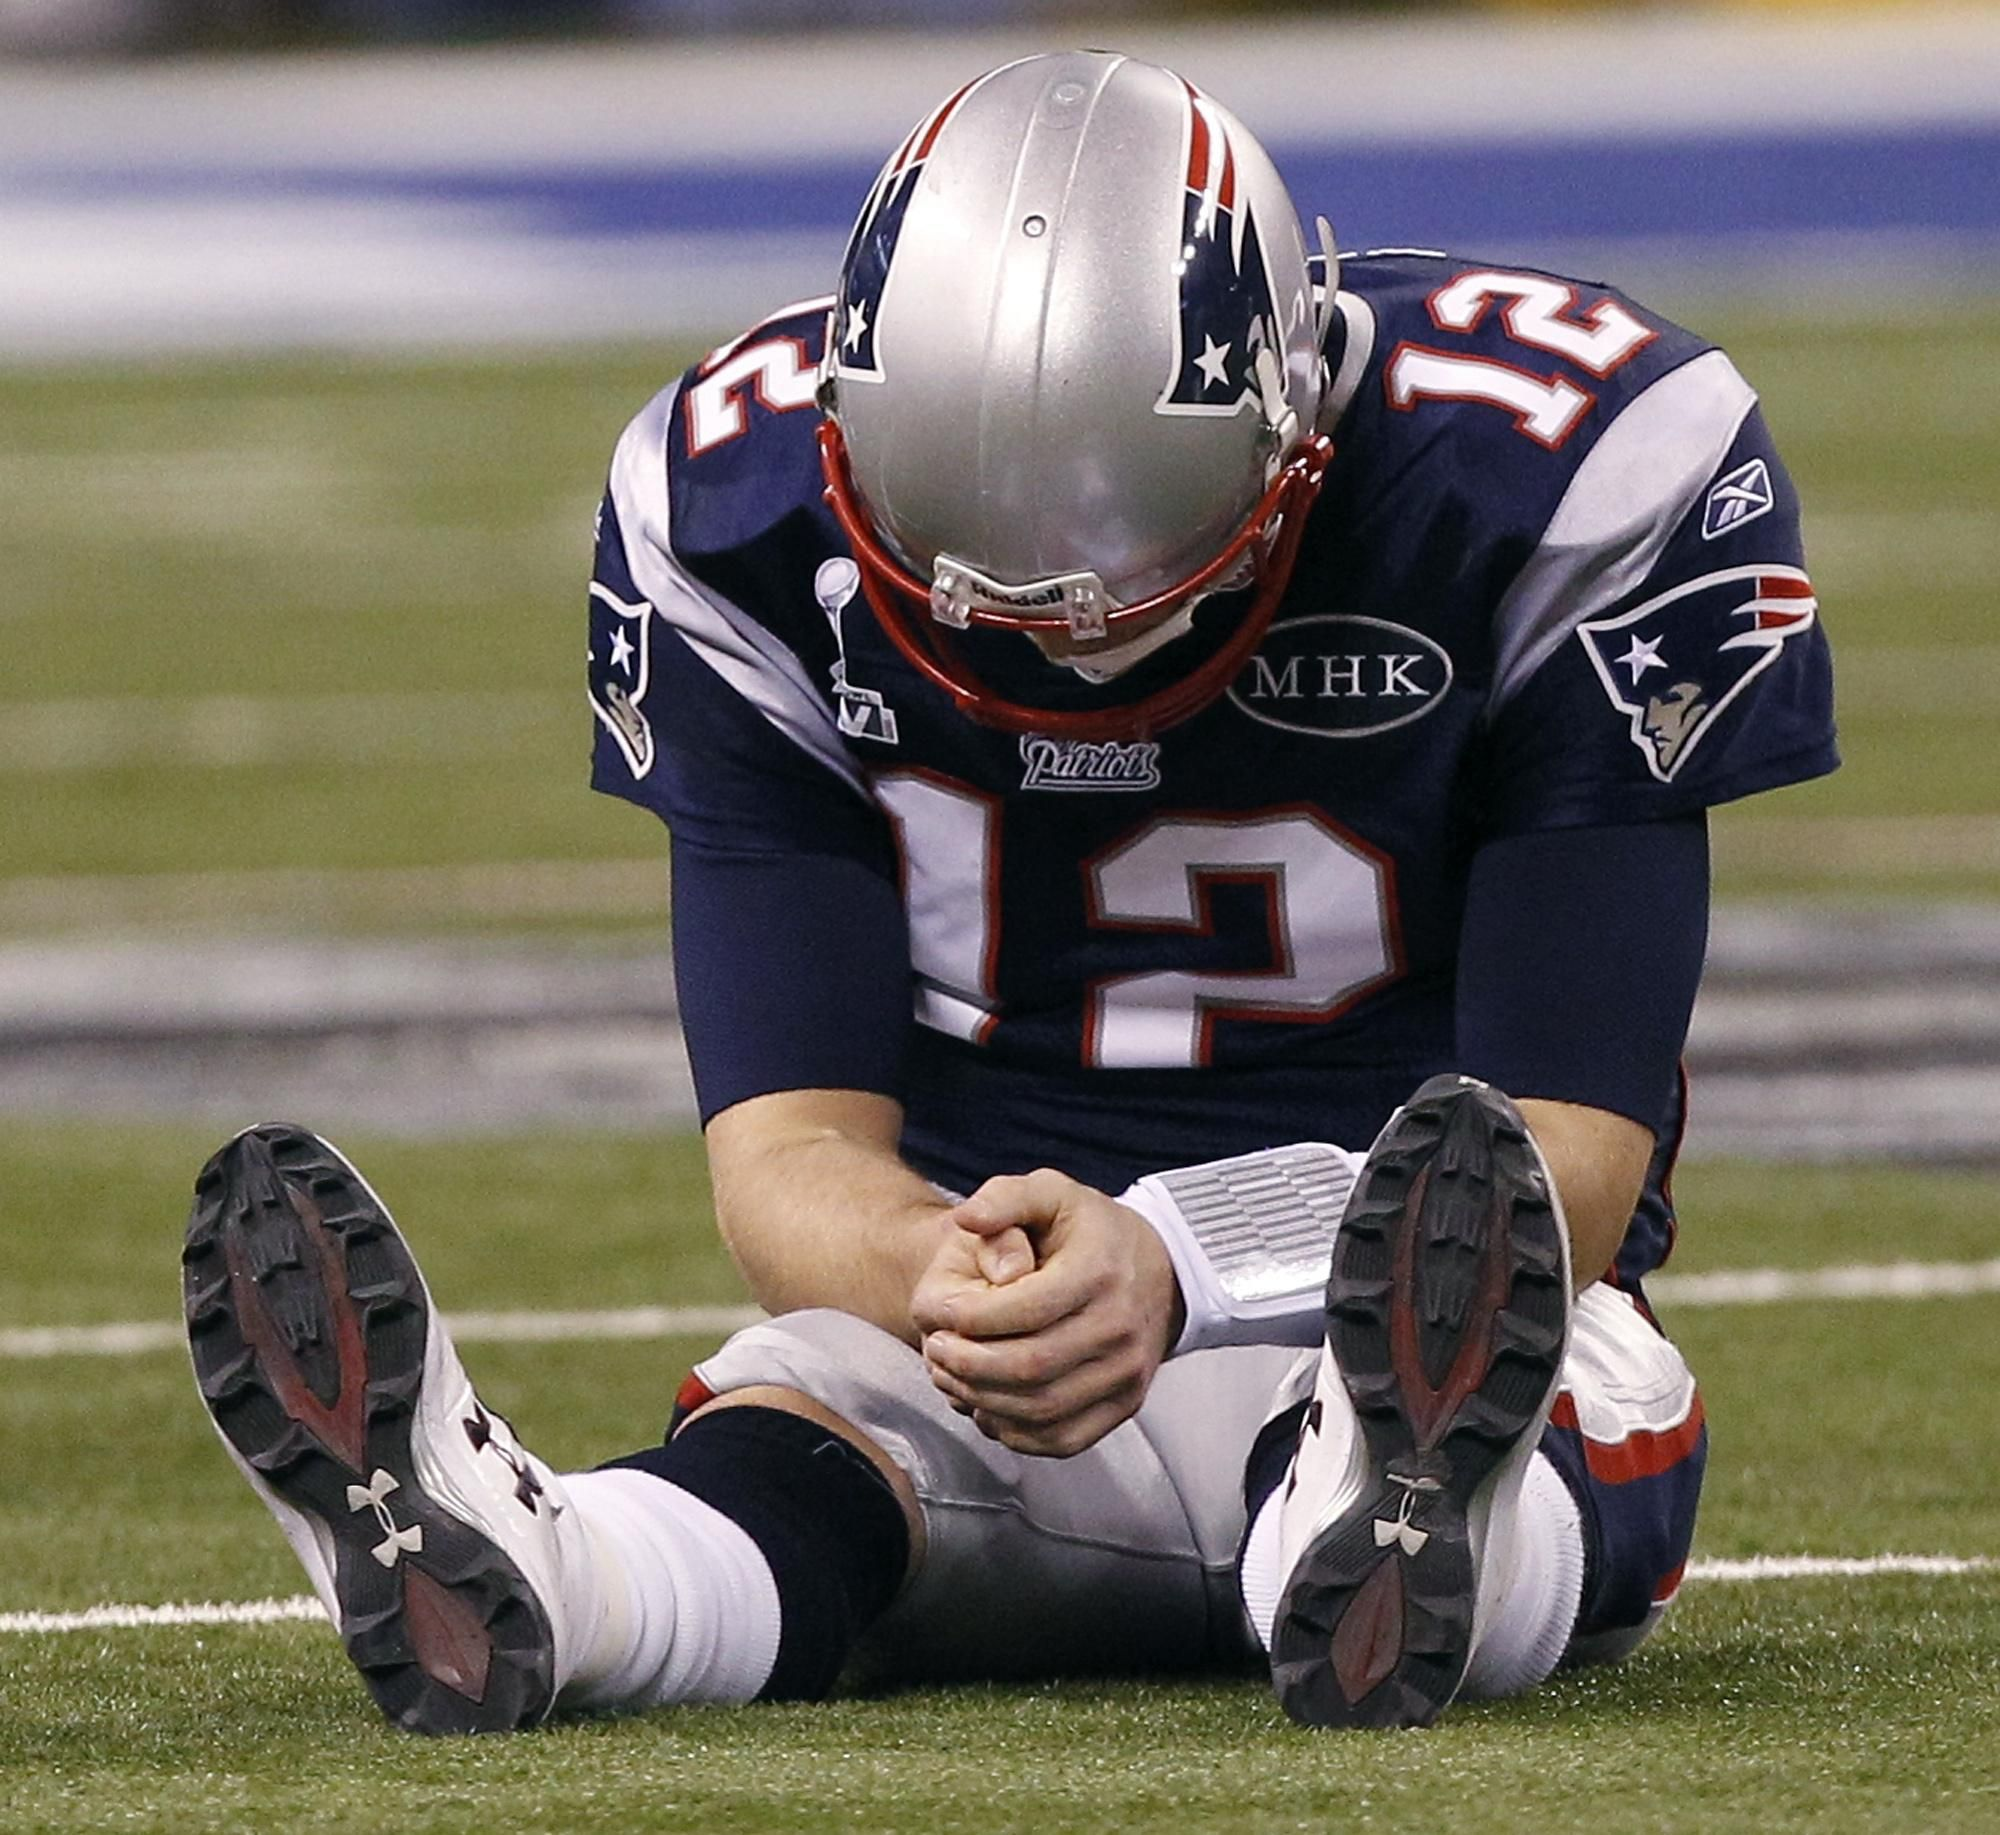 i laughed so hard when i saw him doing this... wittle bwady sad cause he got intercepted.. lol